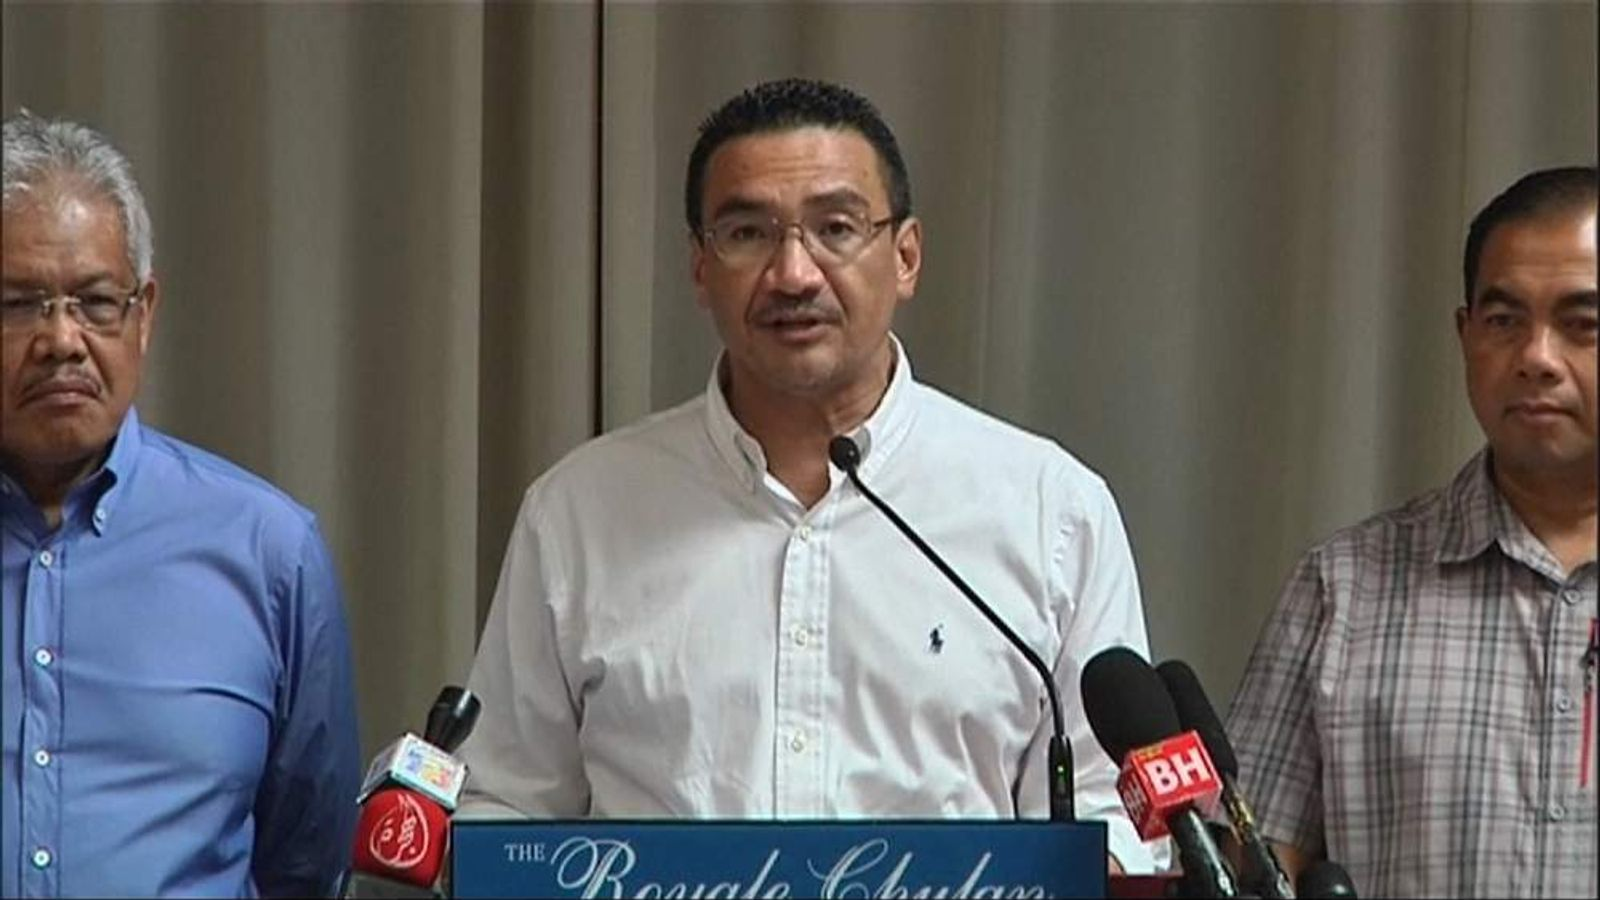 Missing Malaysia plane news conference